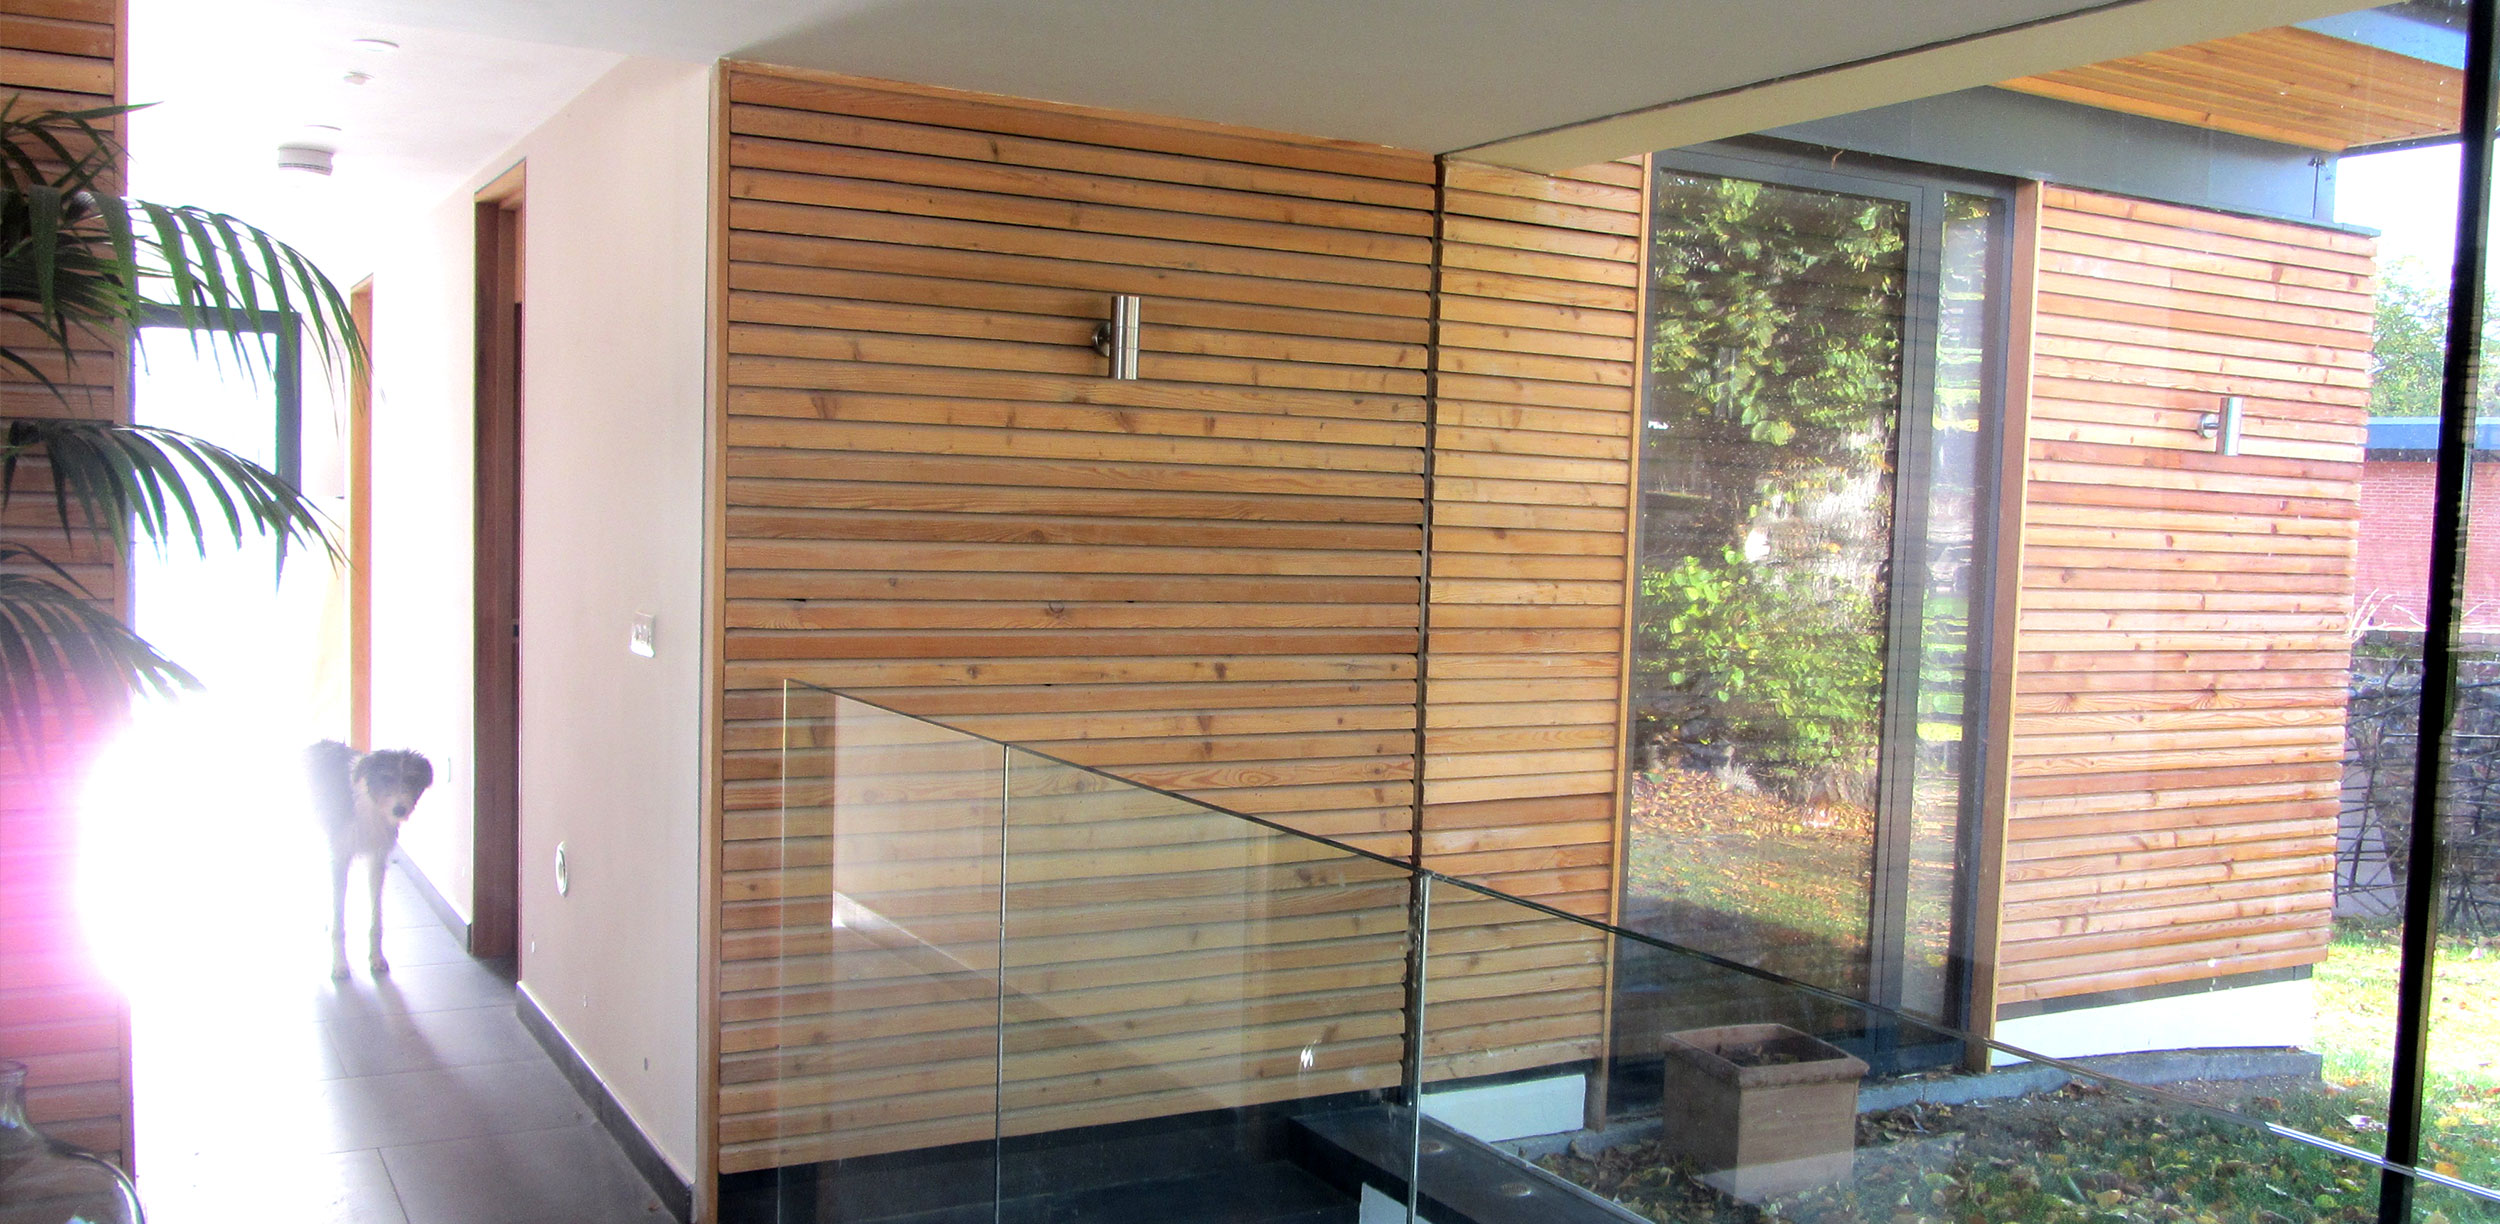 The cladding is extended into internal spaces